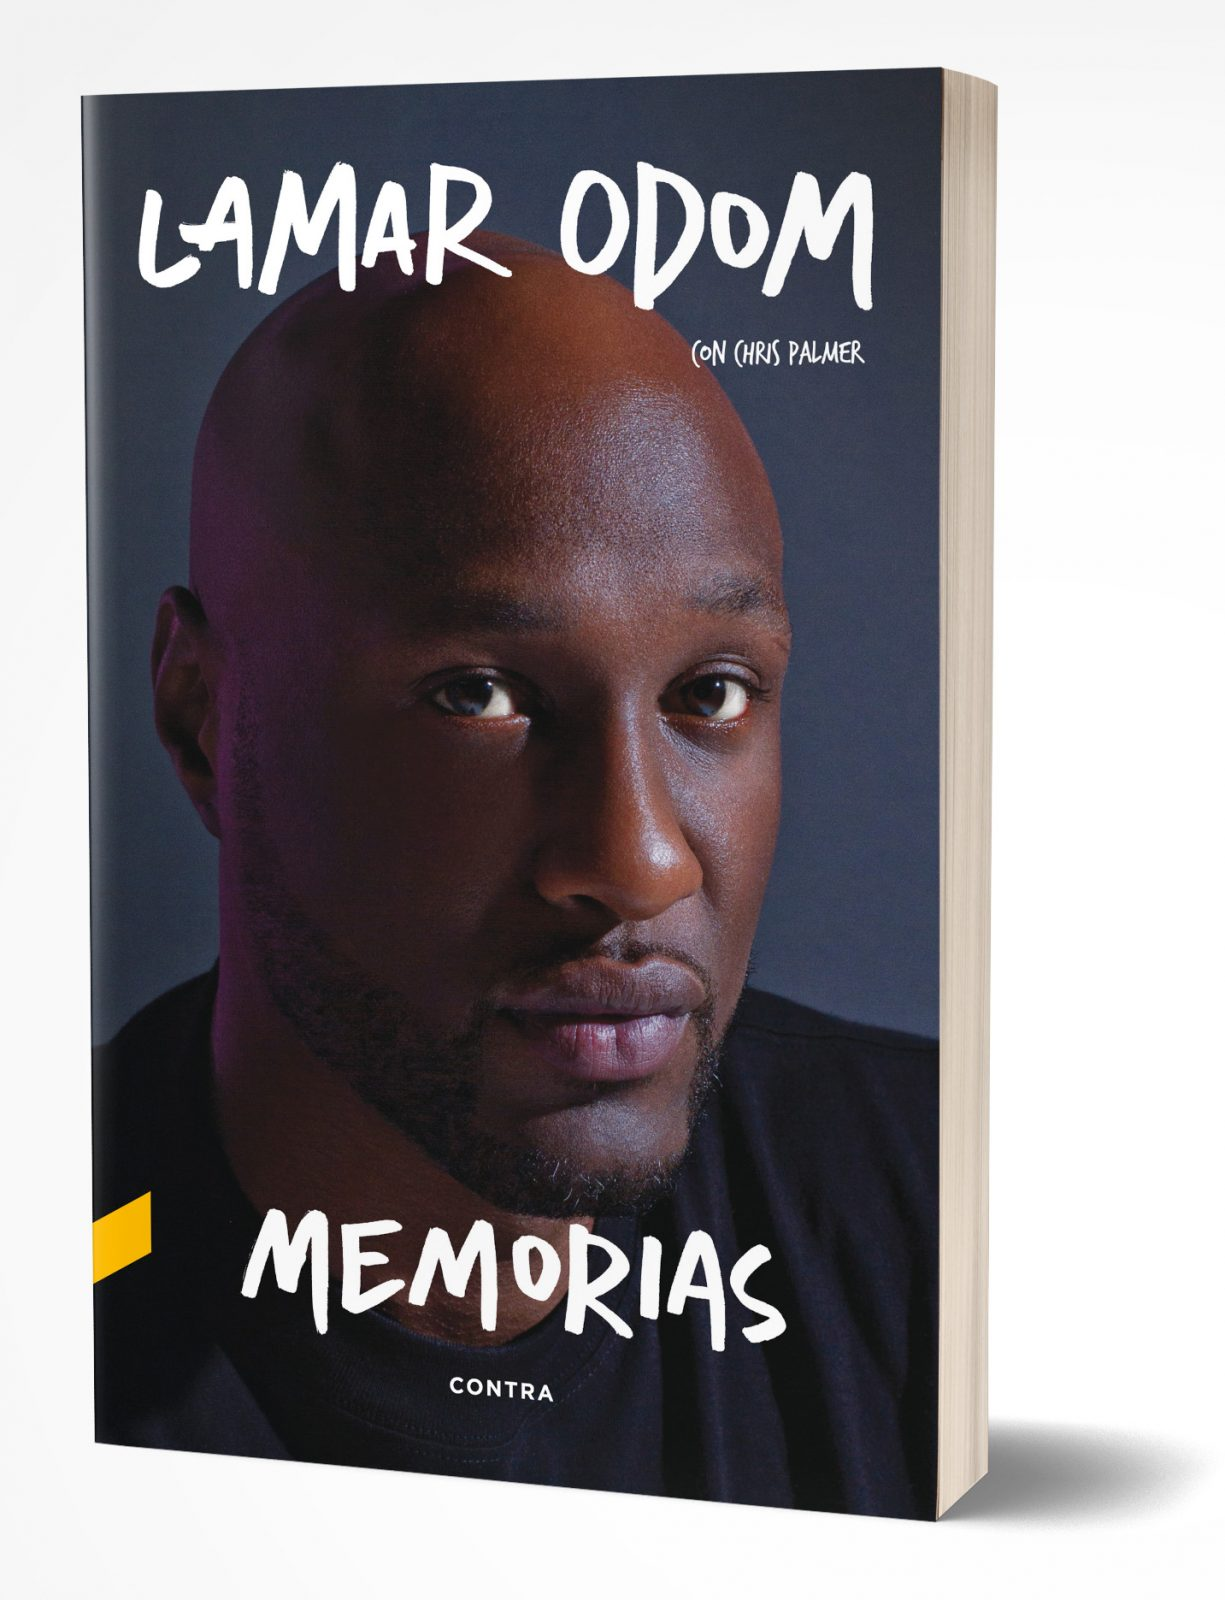 Lamar_Odom_cover_3D